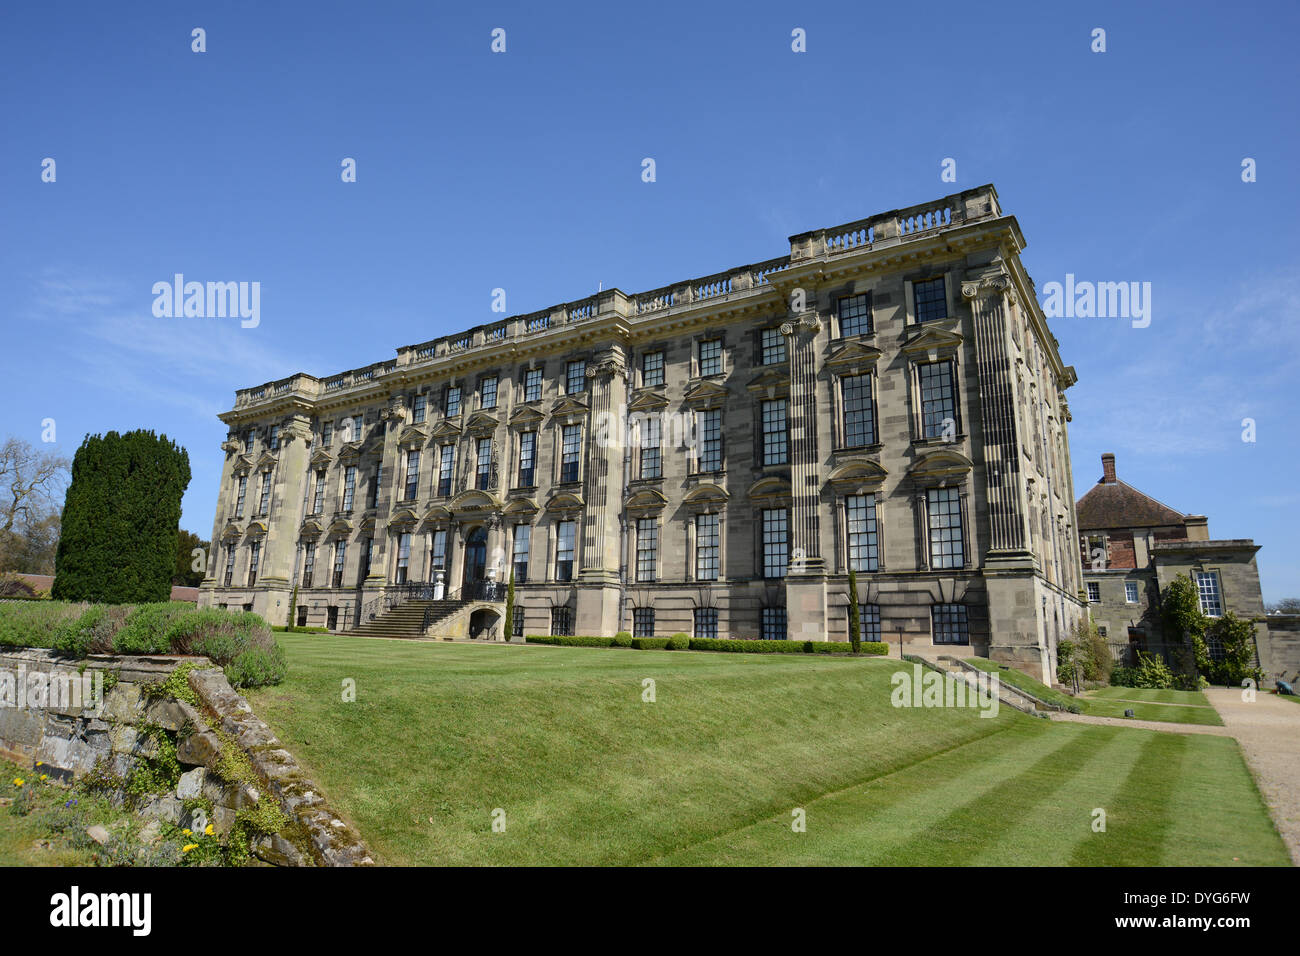 Stoneleigh Abbey in Warwickshire. A listed building which was once visited by Jane Austen and Queen Victoria. - Stock Image